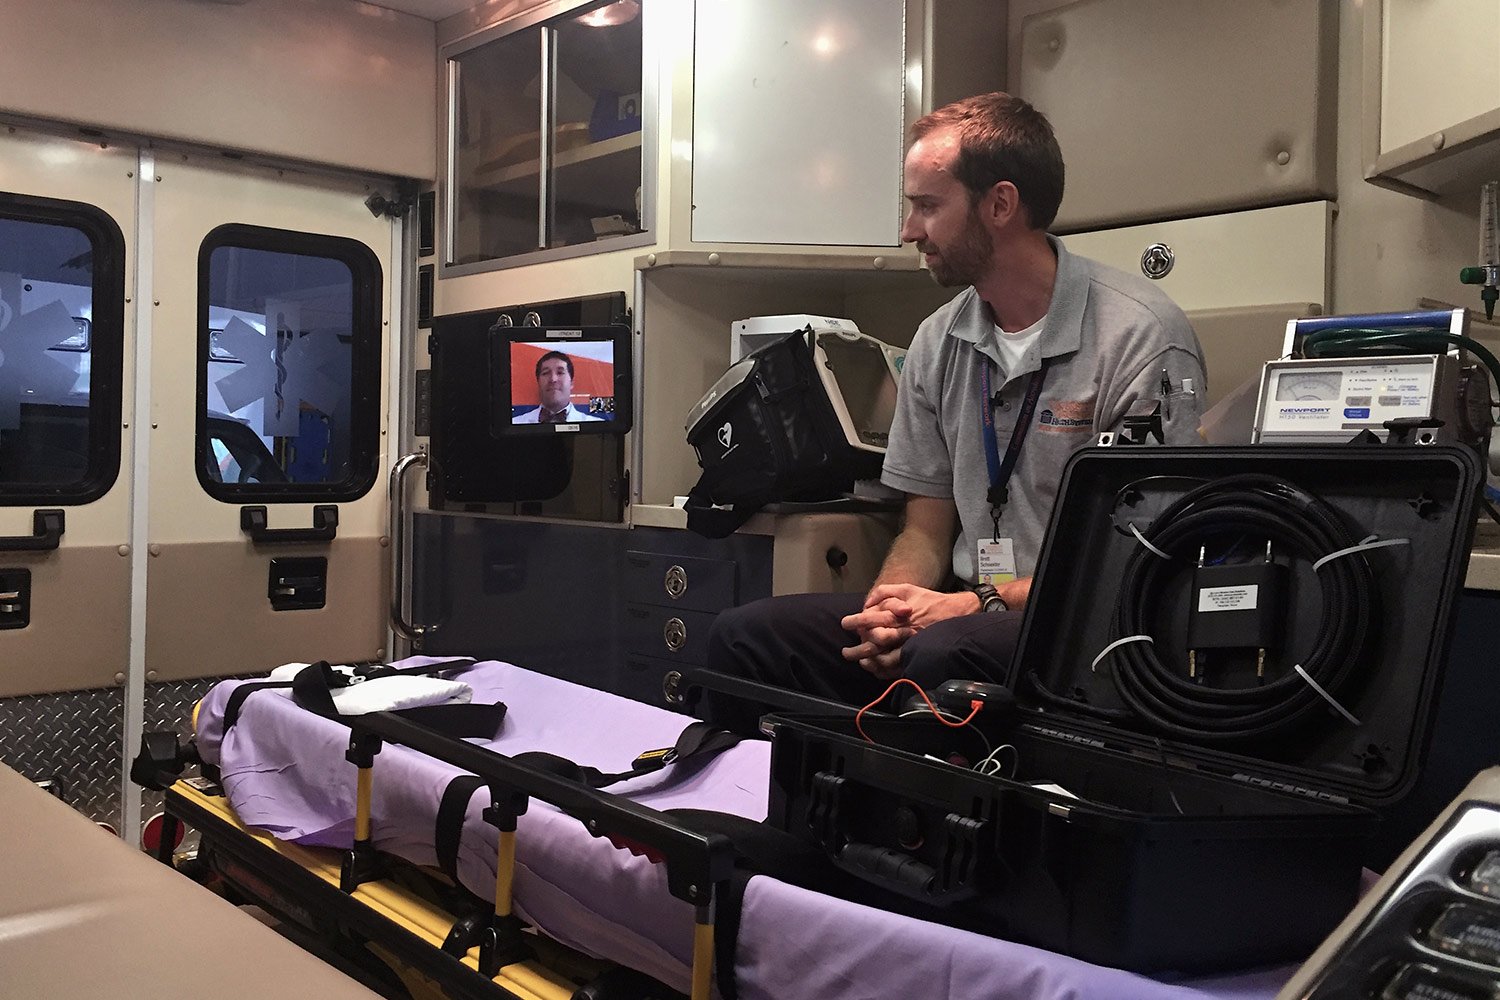 The tablet can be mounted in an ambulance, virtually bringing a doctor to the patient while en route. (Photos courtesy of UVA's Health System)